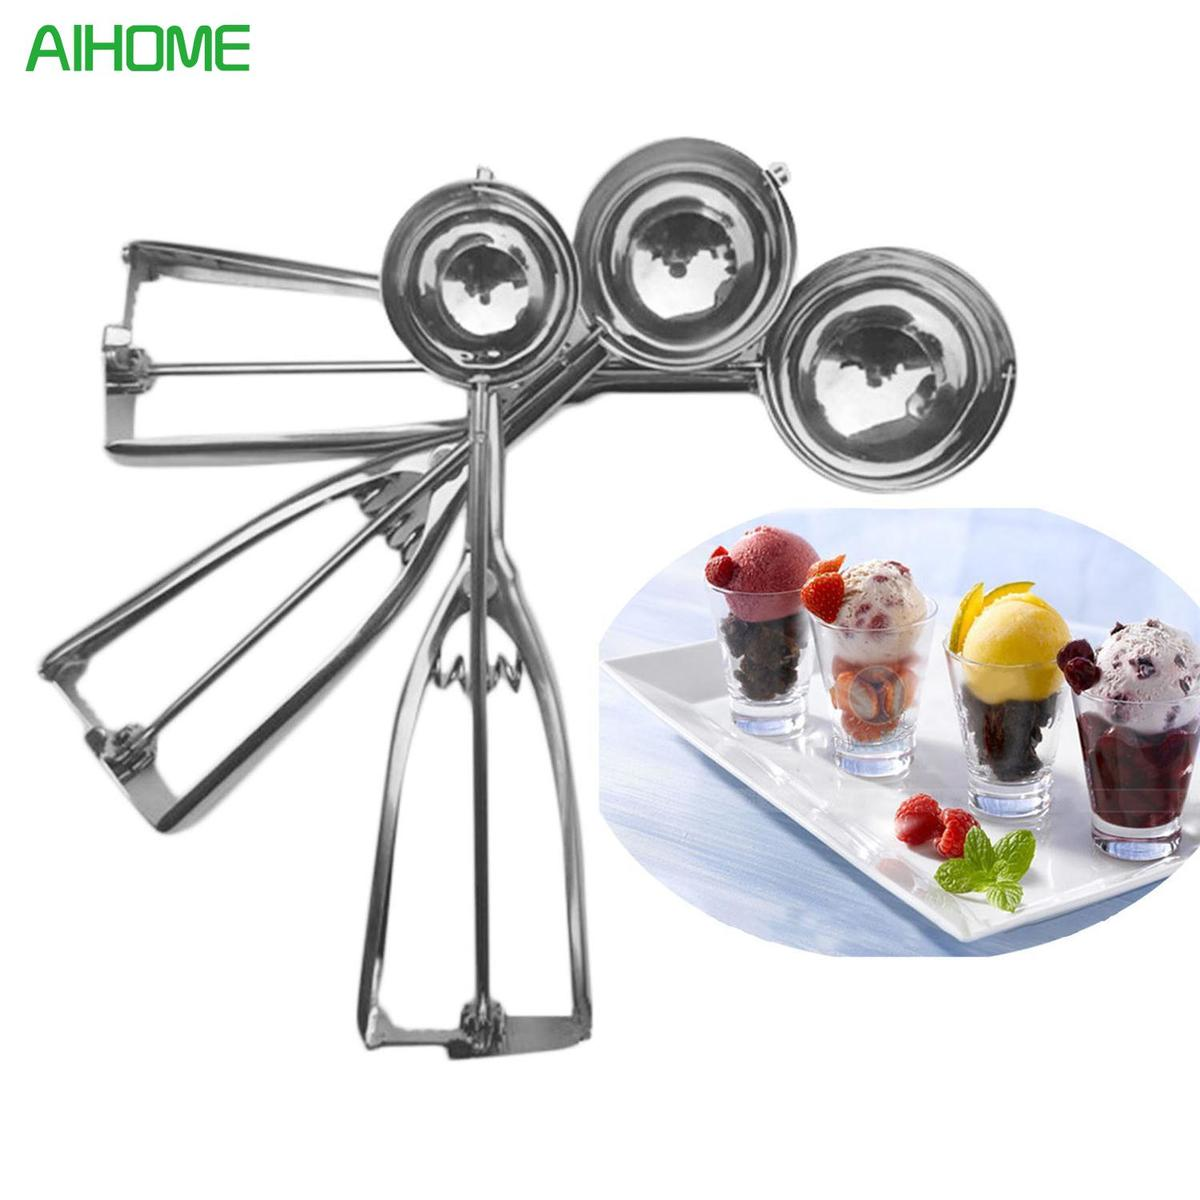 New DIY 3Pcs Handmade Stainless Steel Icecream Mould Ice Cream Scoop Spoon Mold Mould Tool Sets ZGD32